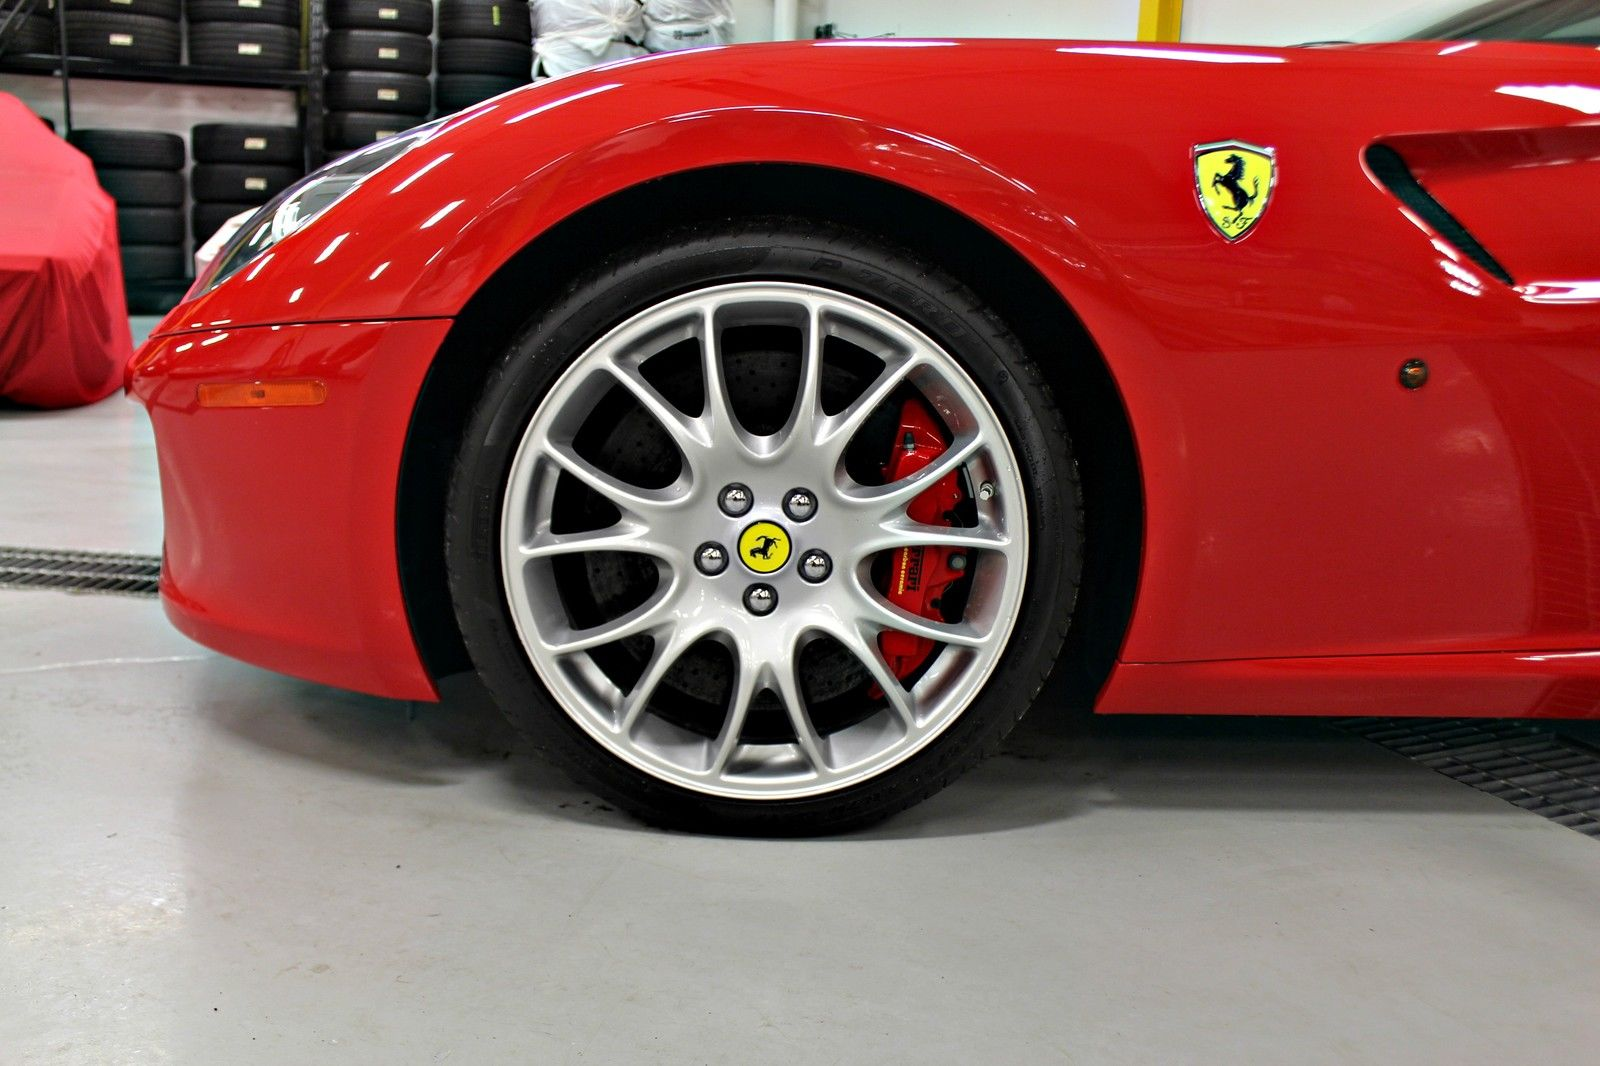 Manual_Ferrari_599_GTB_Fiorano_05